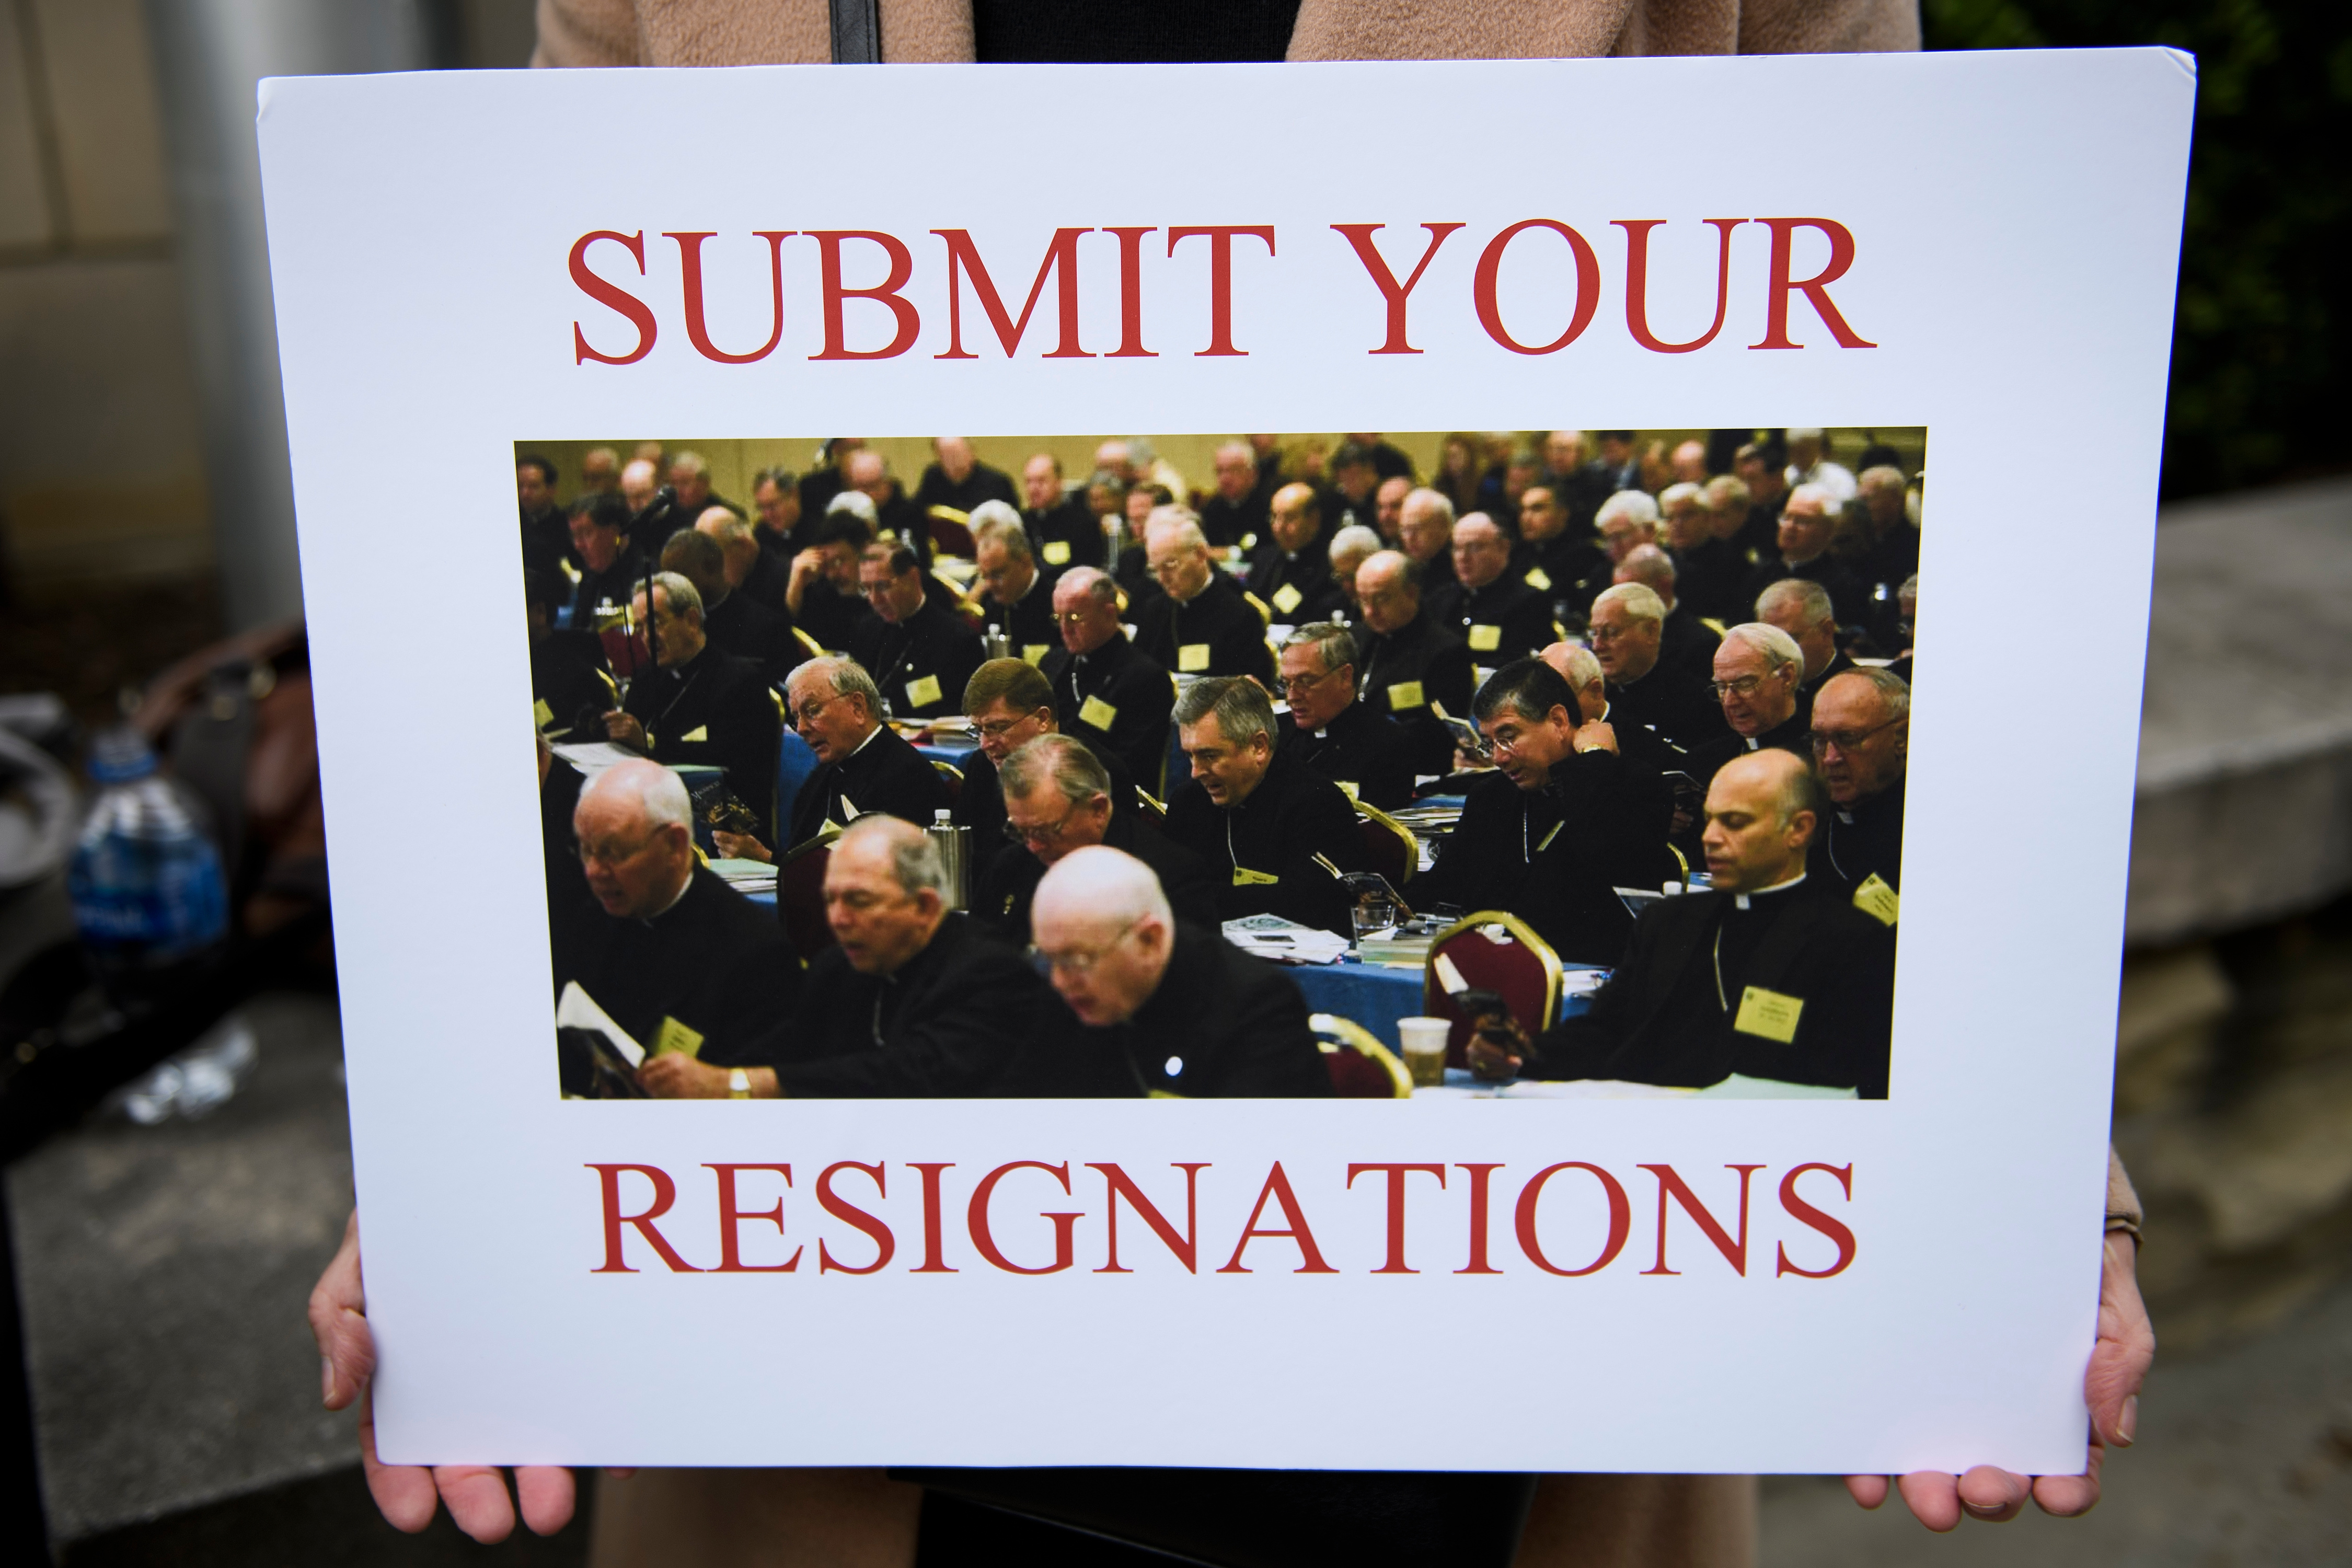 A protester holds a sign during the annual US Conference of Catholic Bishops November 12, 2018 in Baltimore, Maryland. ( BRENDAN SMIALOWSKI/AFP/Getty Images)